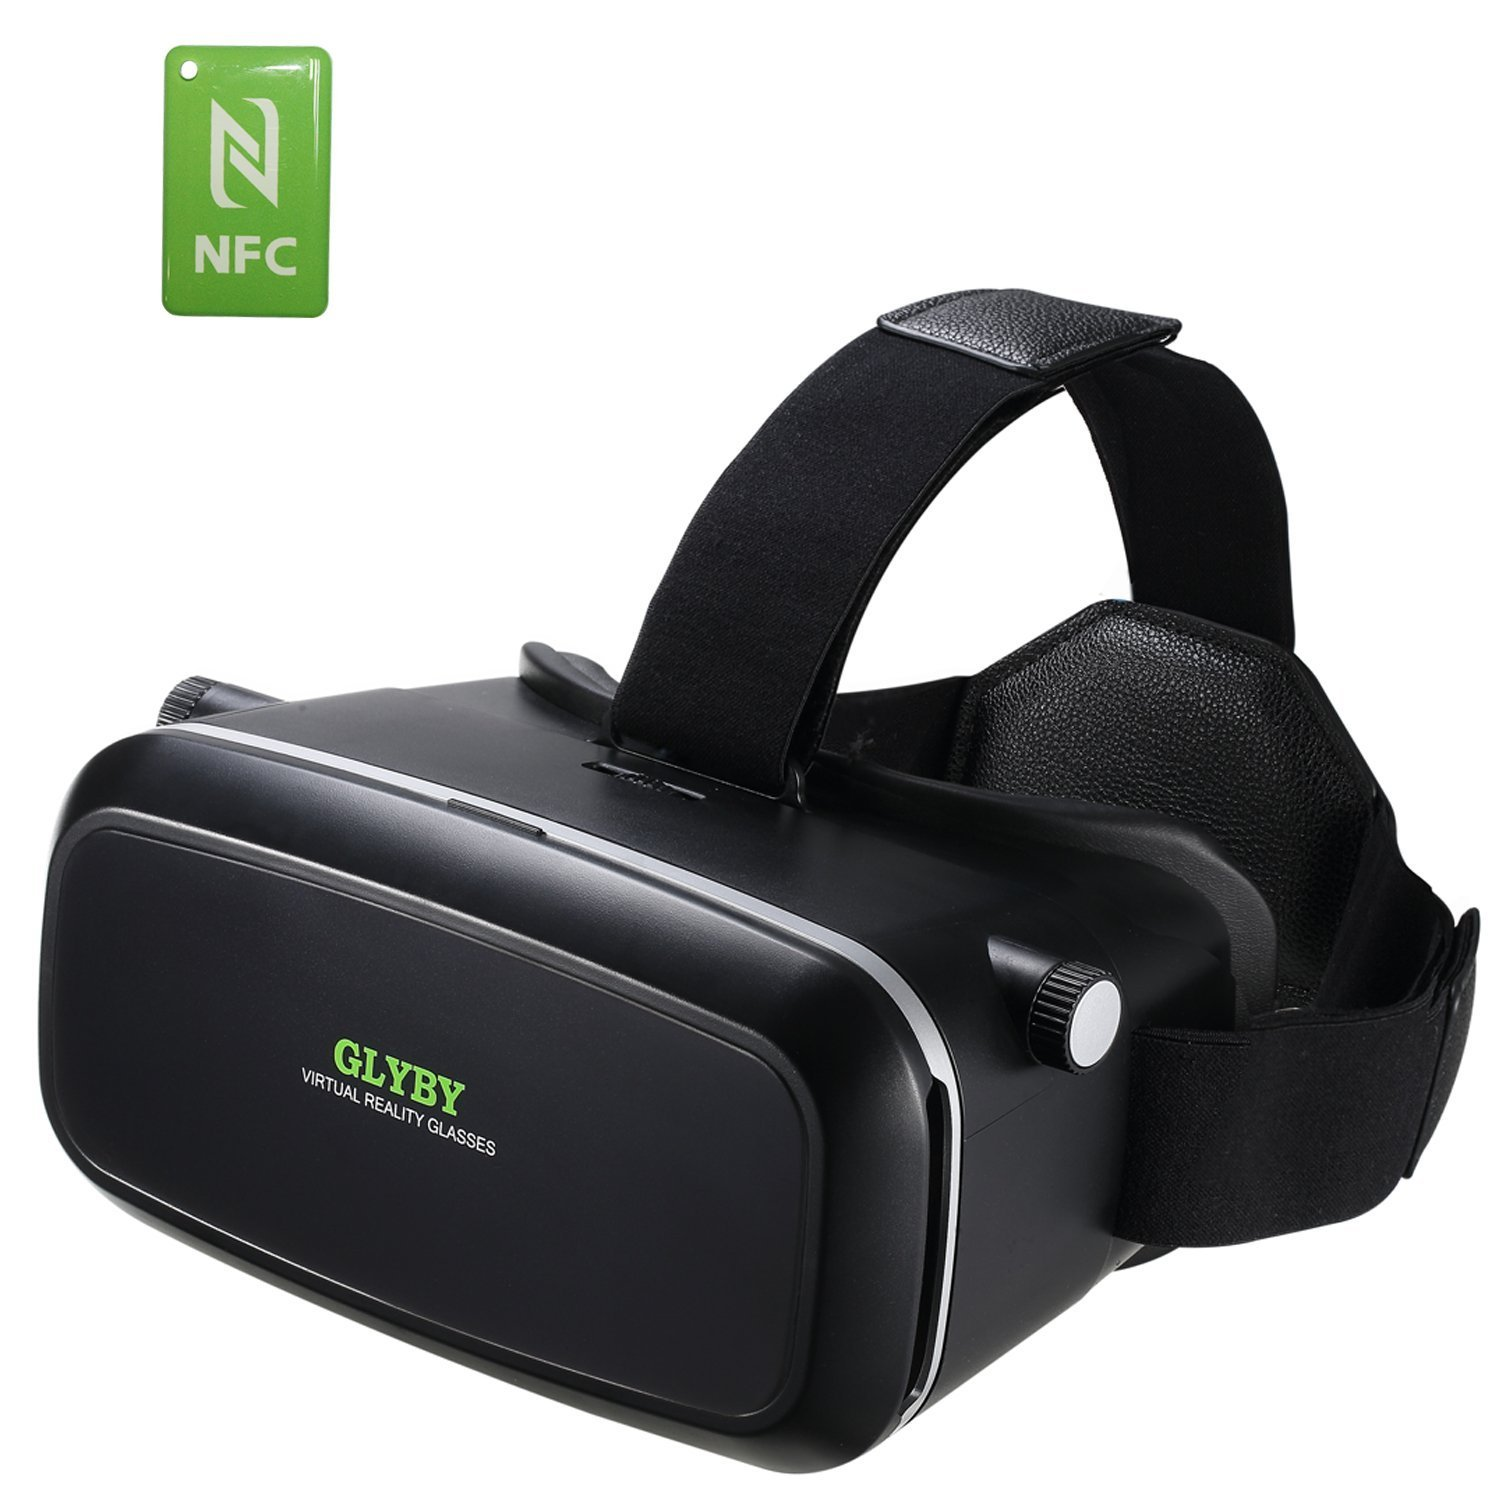 45482f8e844 2016 Glyby Virtual Reality Headset (3.5 to 6.0 Inch Screens)– 3D VR Glasses  Headset BOX for Video Games with NFC Tag – Samsung Galaxy Note 2